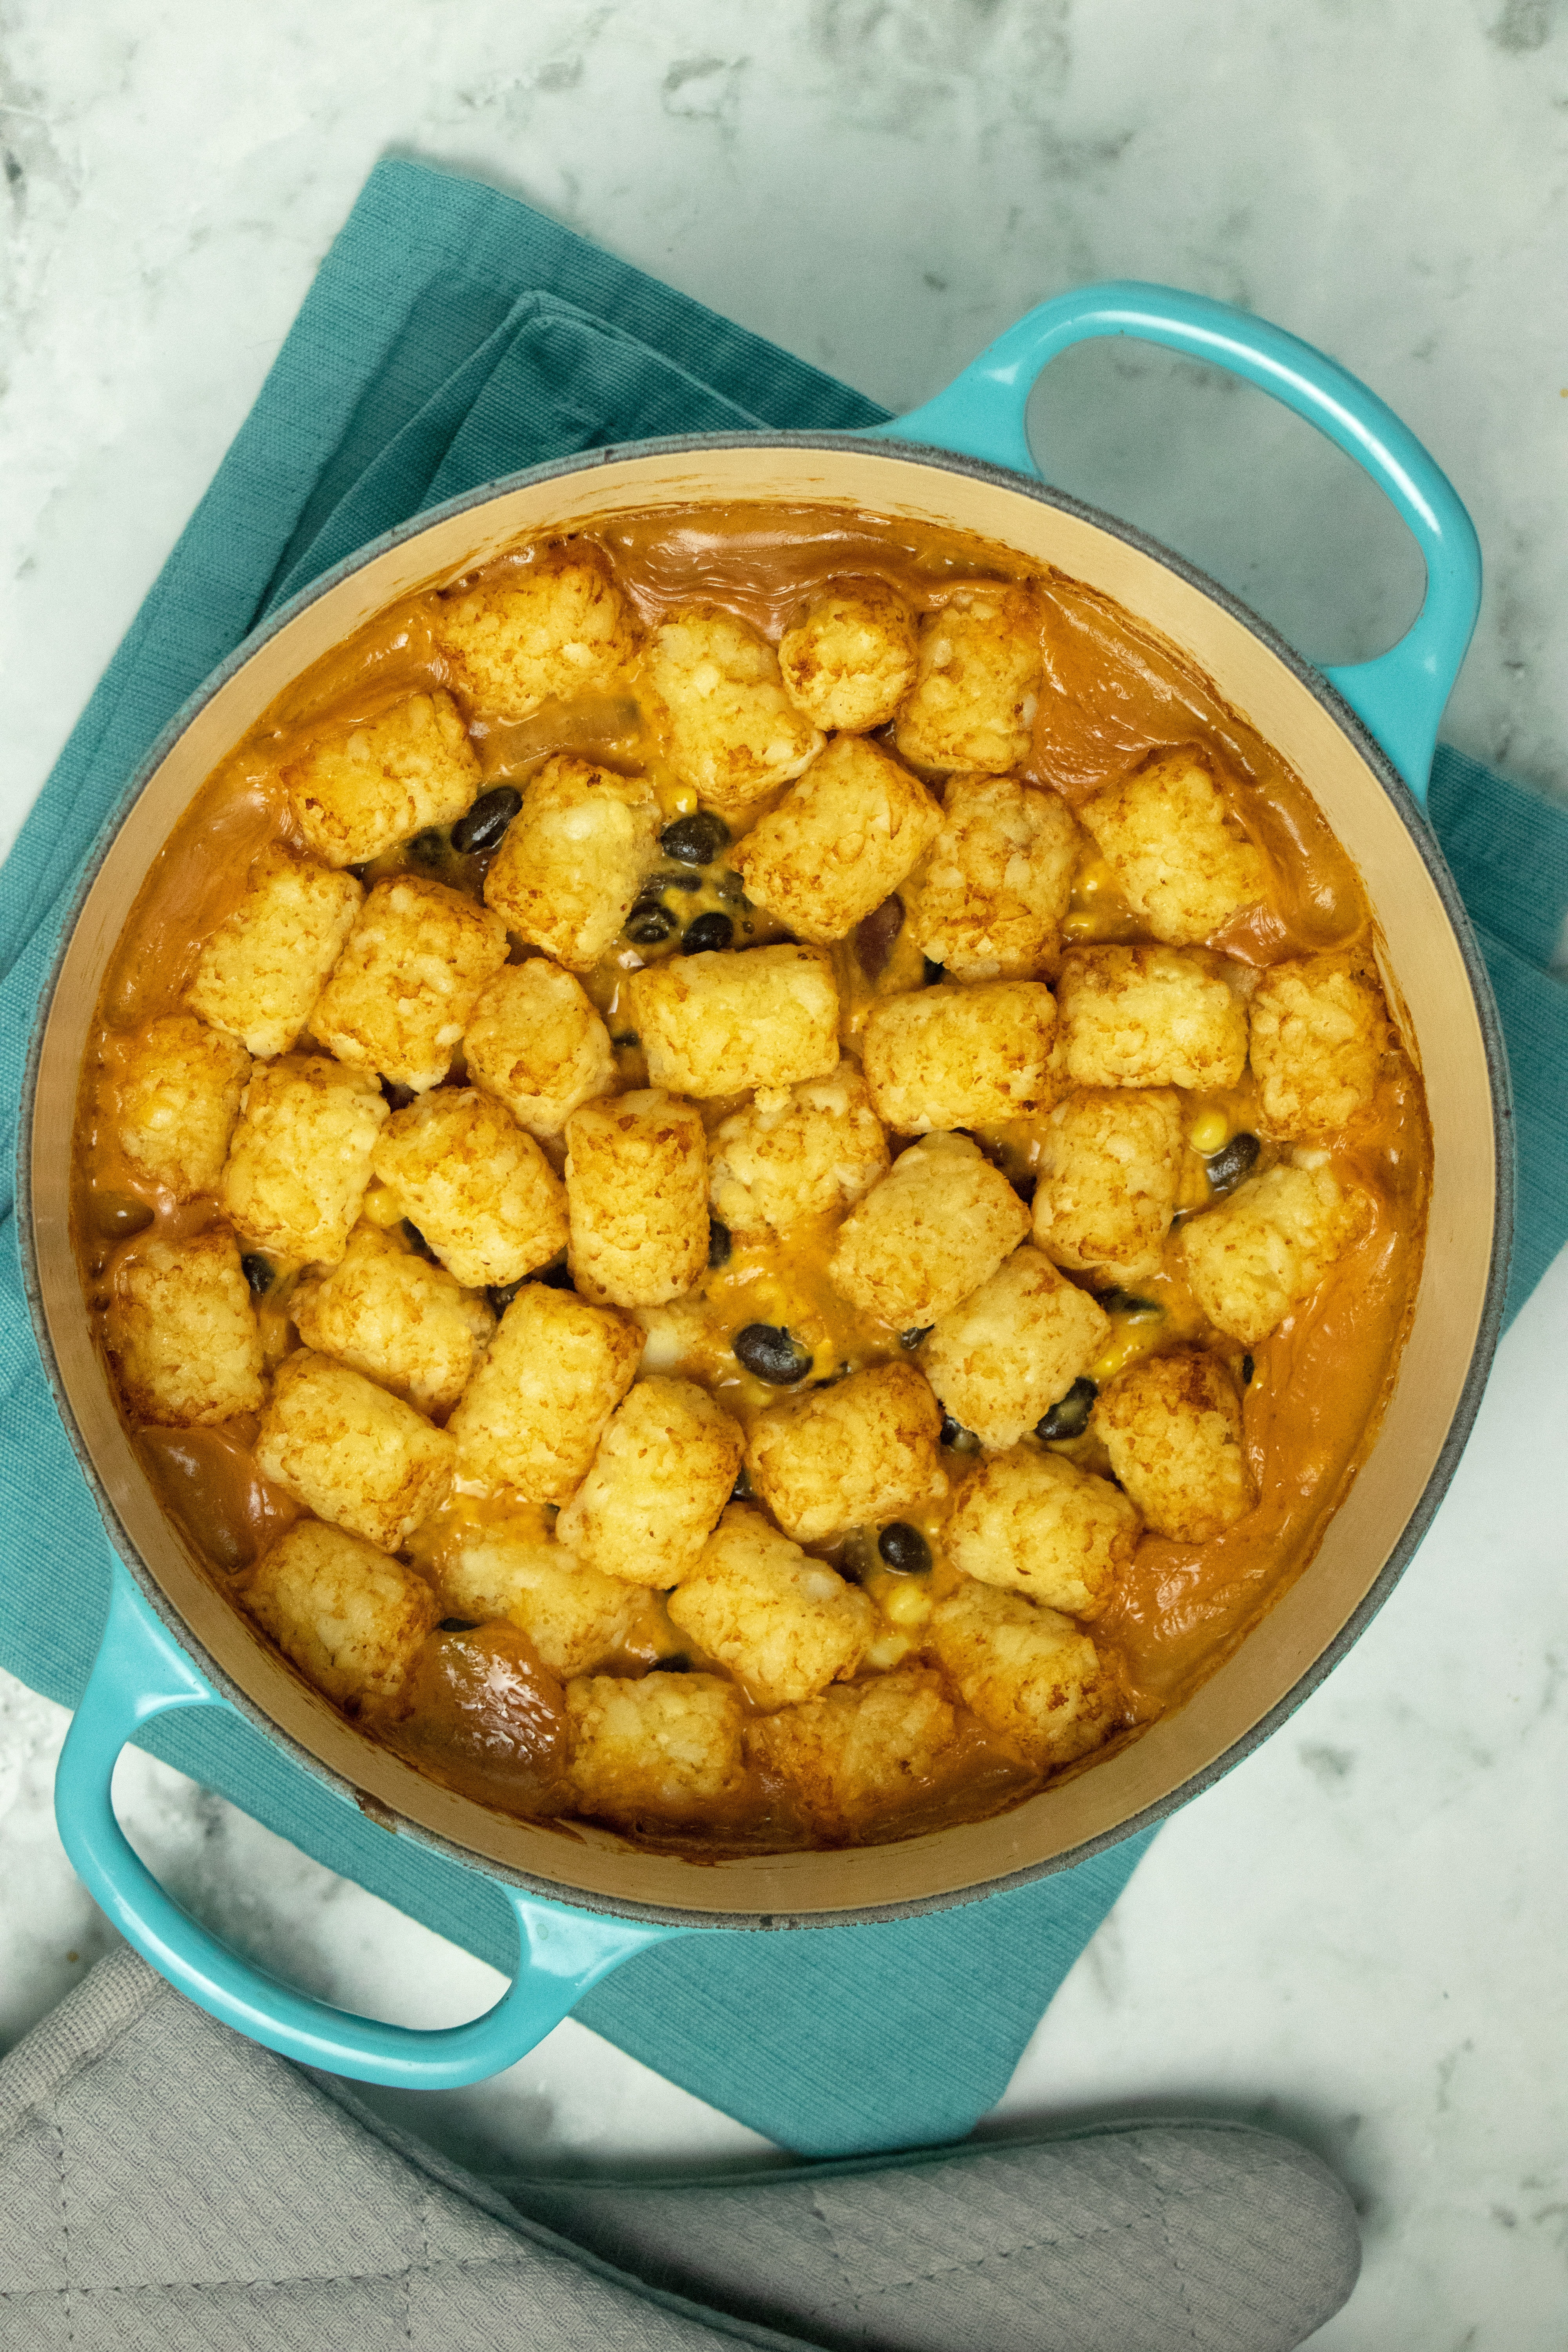 cheesy chili vegan tater tot casserole in a blue Dutch oven, after baking. The tots are browned, and you can see the cheese sauce bubbling up